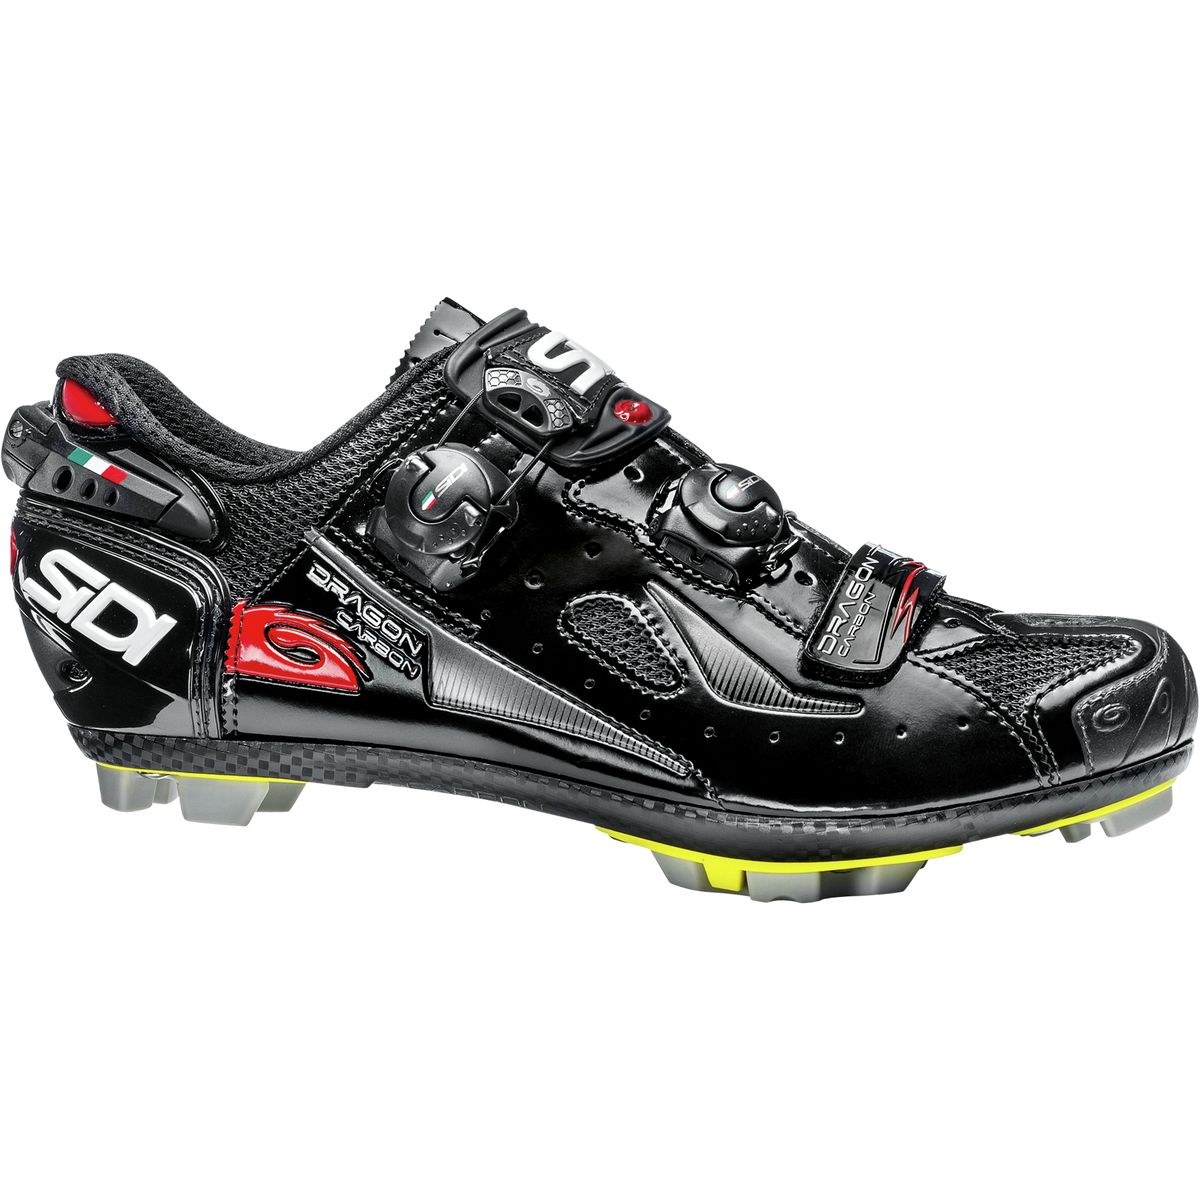 Sidi Dragon 4 Mega Shoe Men's